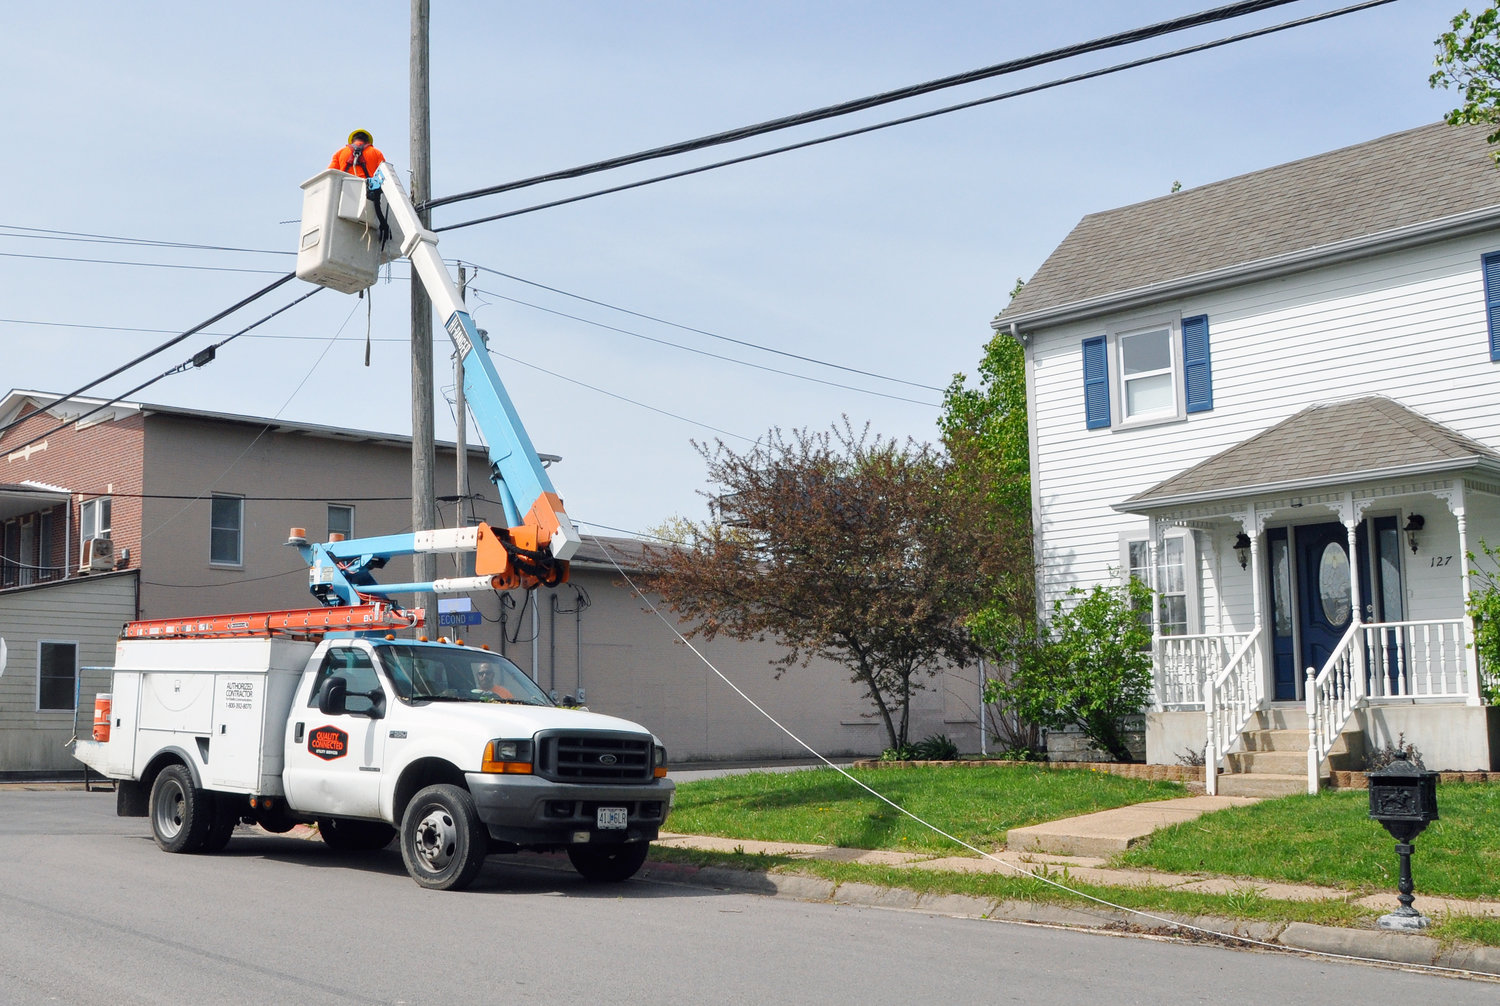 Contractors with Fidelity Communications were found on Main Street at Second Street Monday morning doing preliminary work to run fiber optic cable to residents of Gerald. The crew was running a metal cable above the street (above) upon which the fiber optic cable will be wrapped.